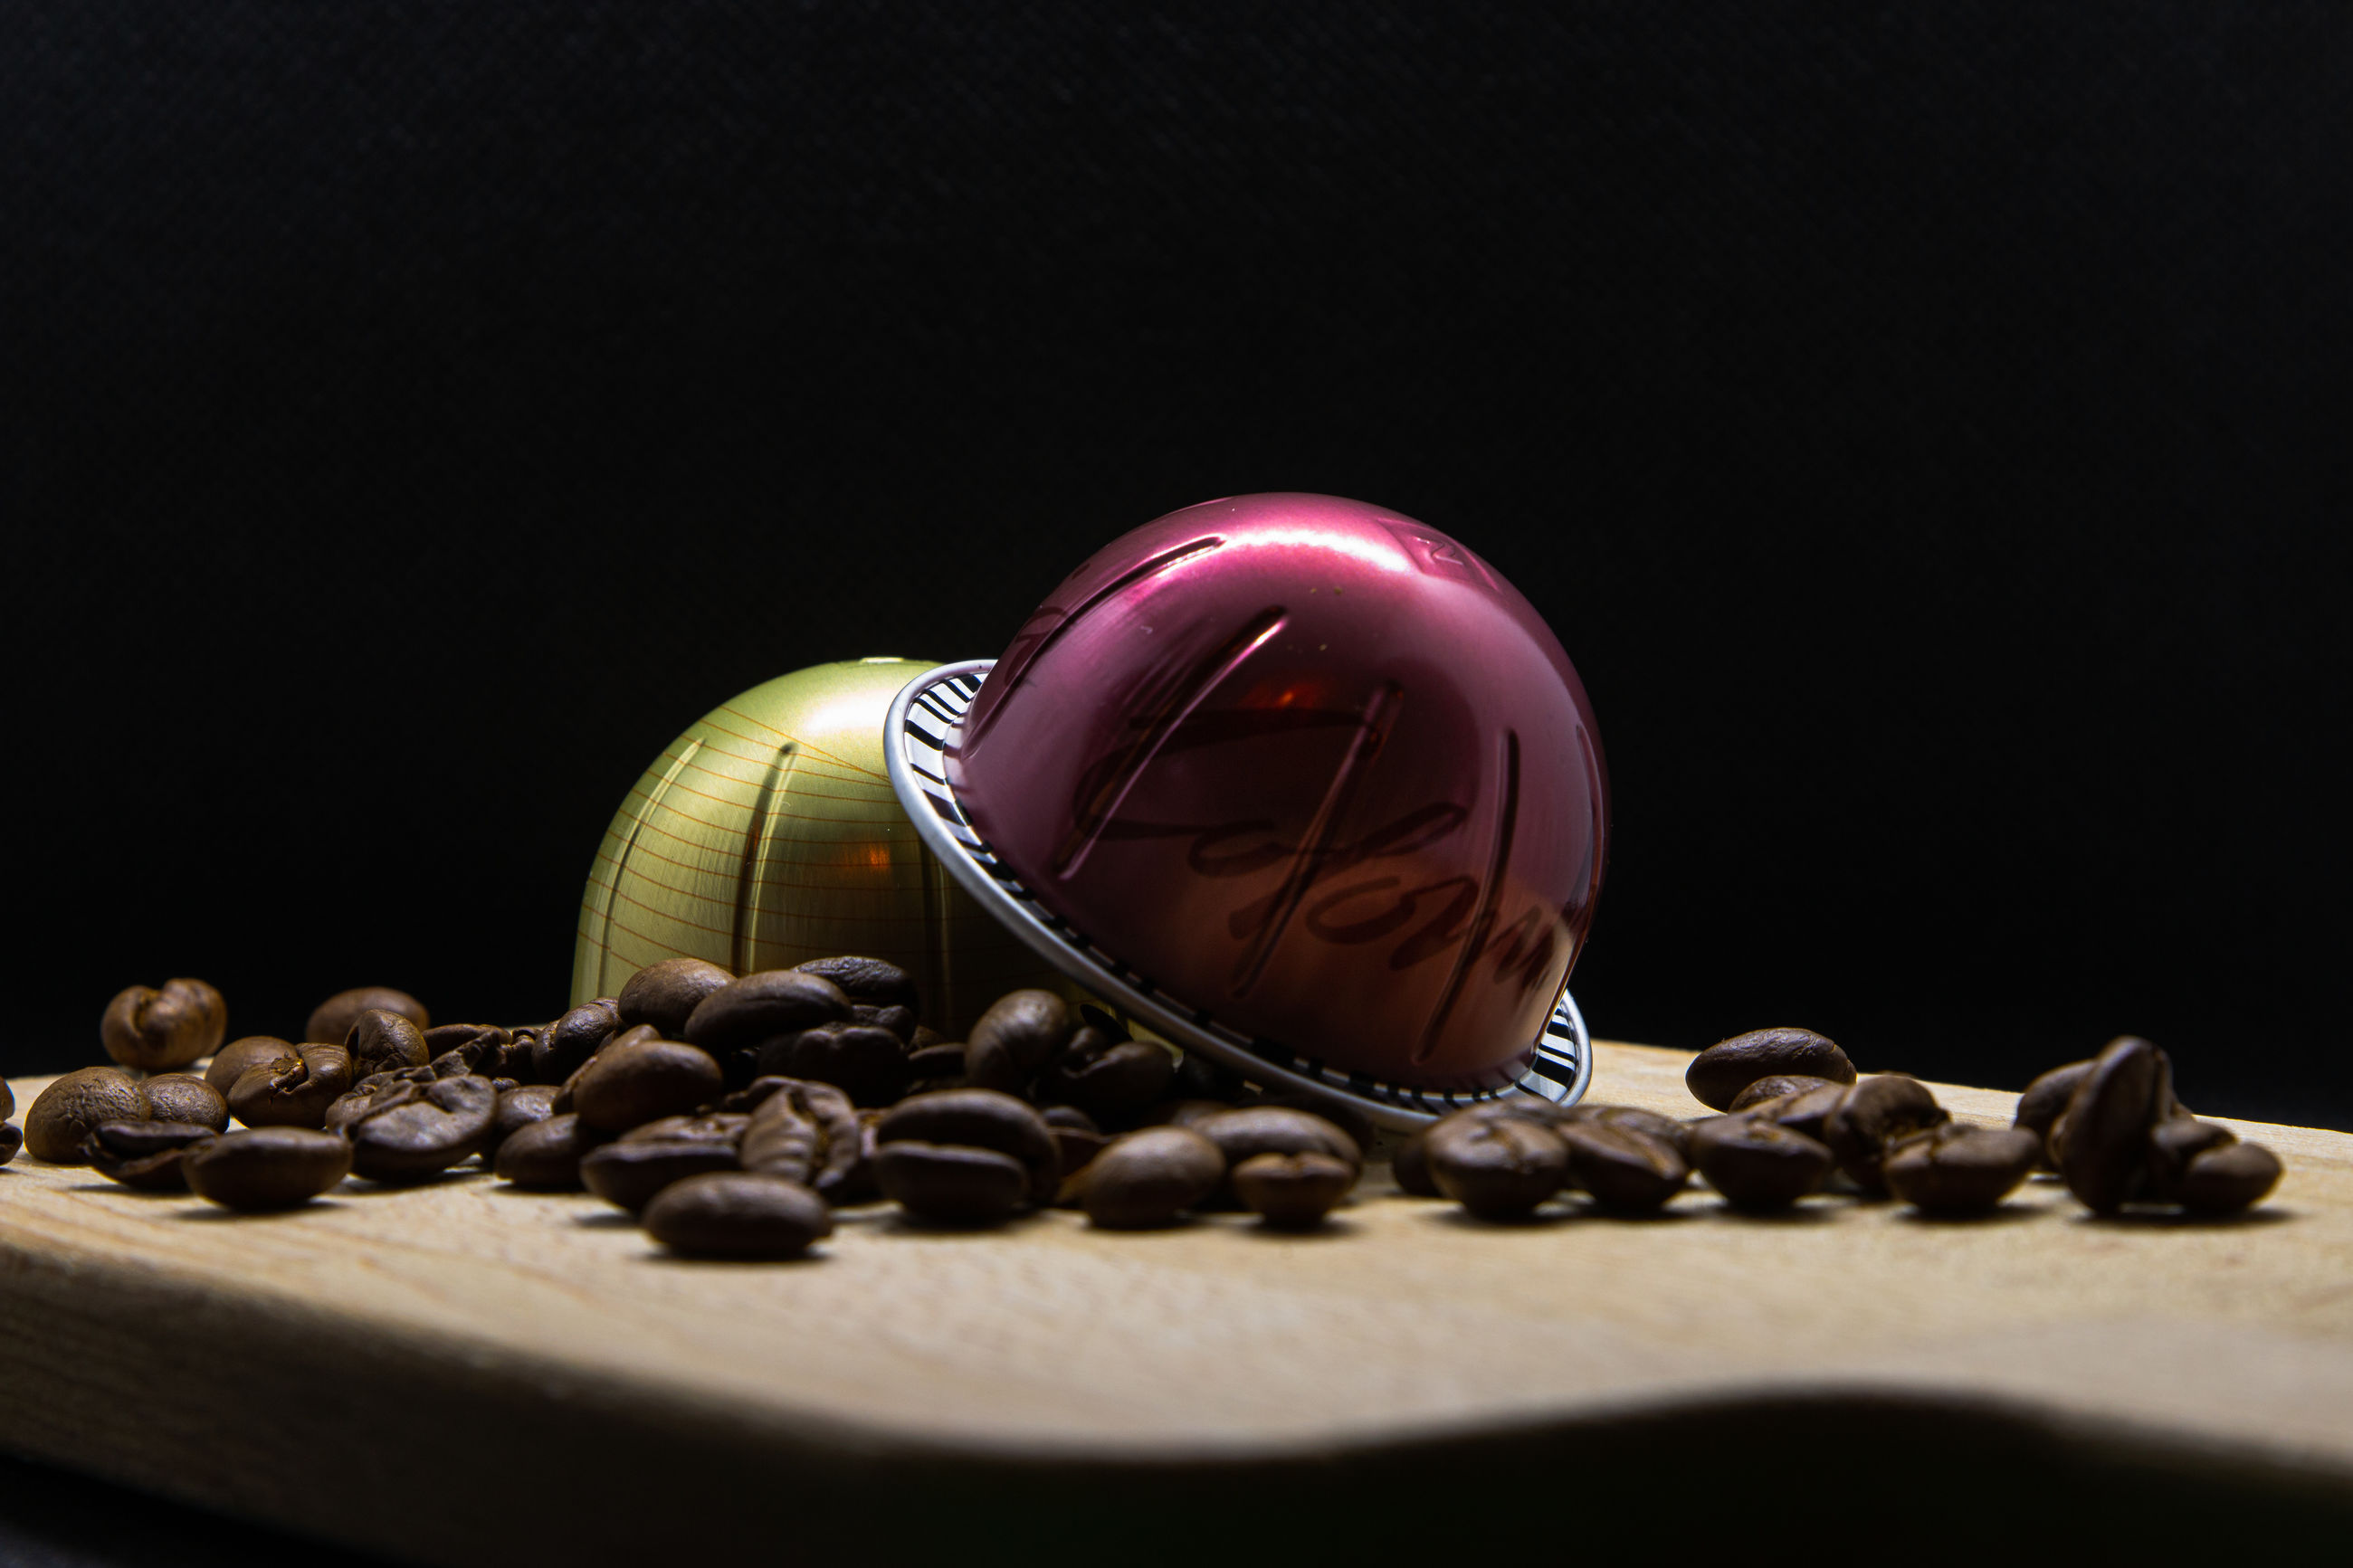 still life, close-up, indoors, black background, no people, studio shot, food and drink, sphere, food, selective focus, pink color, copy space, table, large group of objects, freshness, roasted coffee bean, indulgence, sweet food, creativity, design, surface level